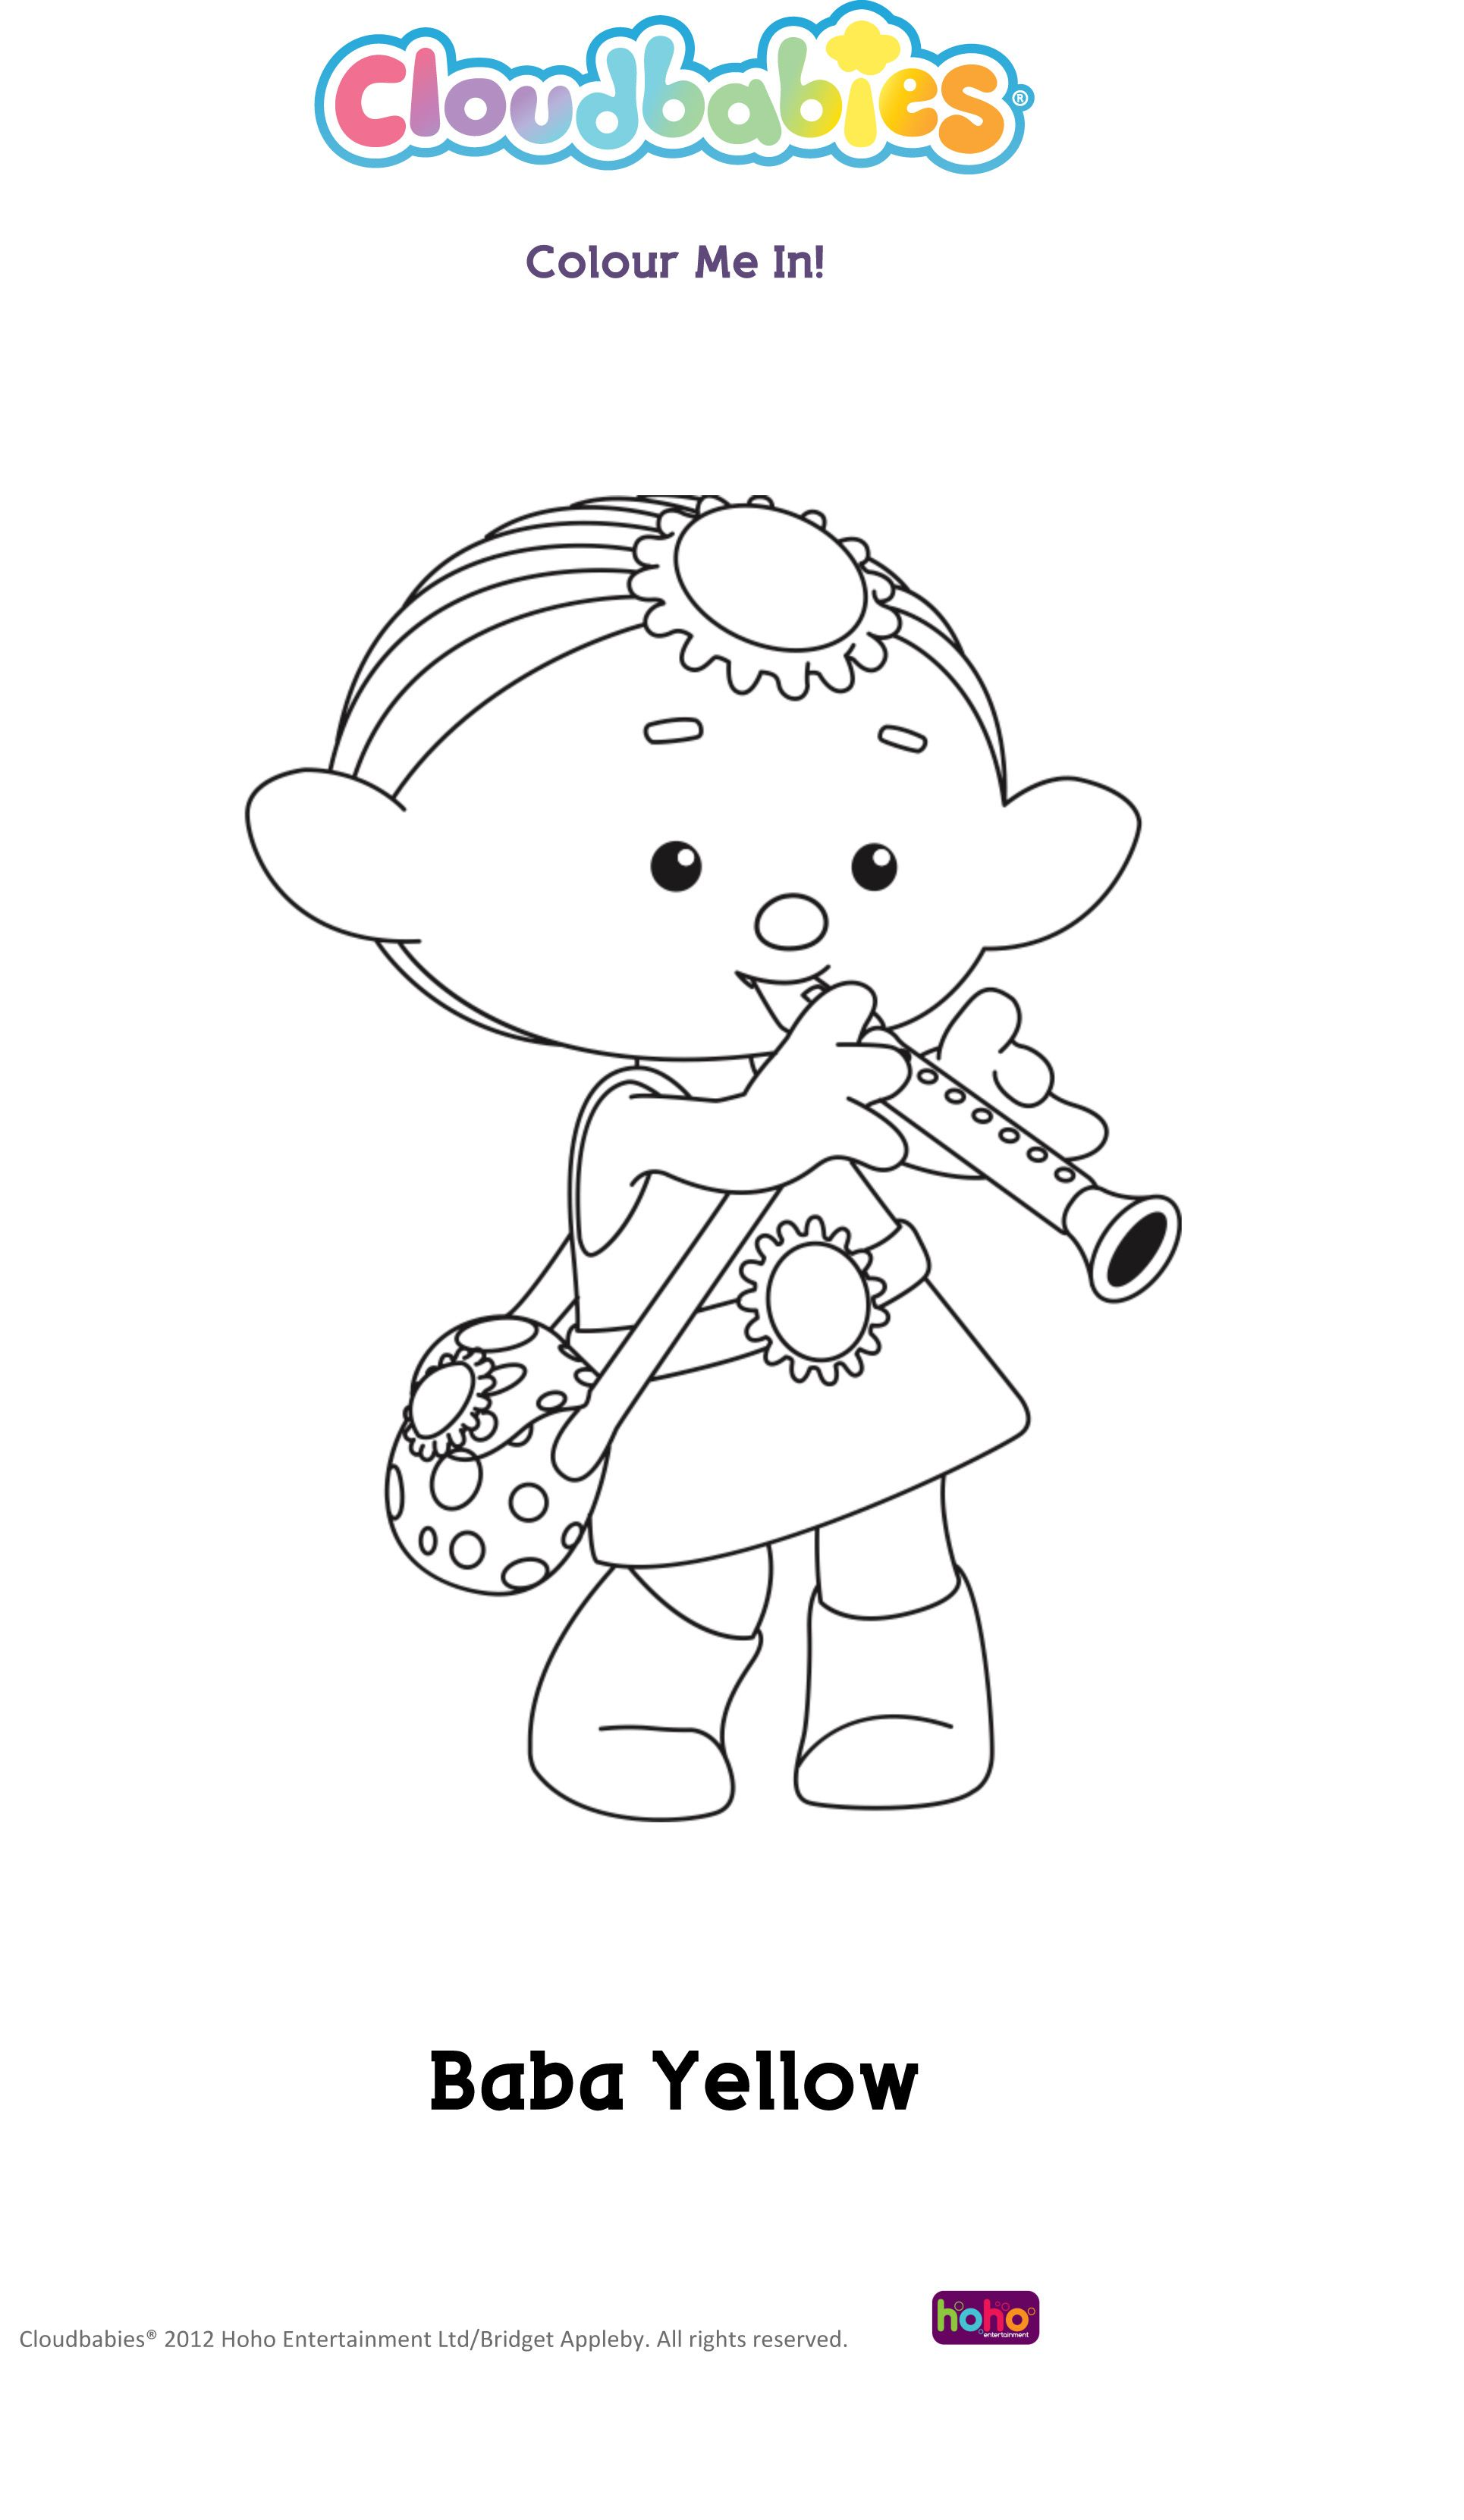 Baba Yellow | Cloudbabies coloring book | Pinterest | Coloring books